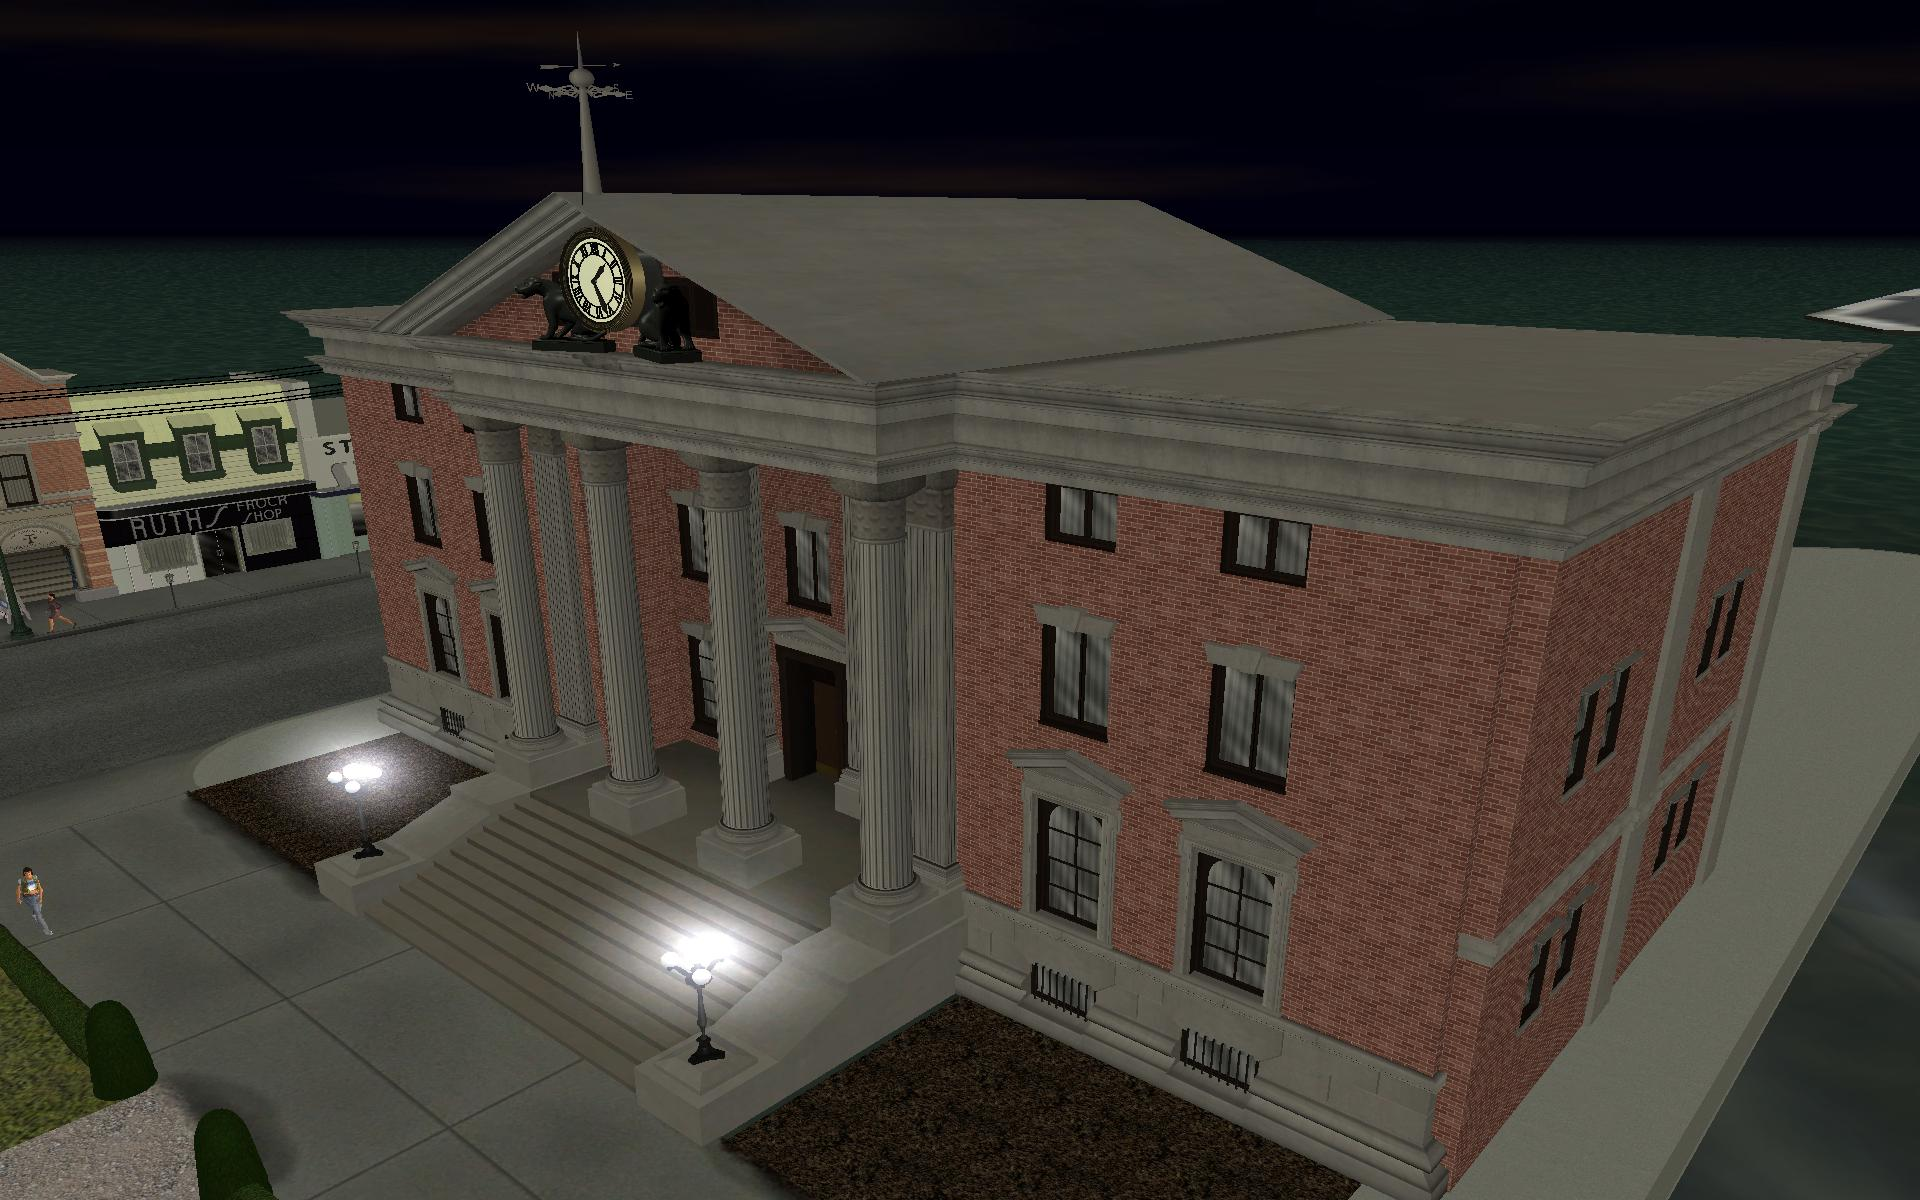 Grand Valley Auto >> 1955 Clocktower - In Game - Night image - Back to the Future: Hill Valley mod for Grand Theft ...